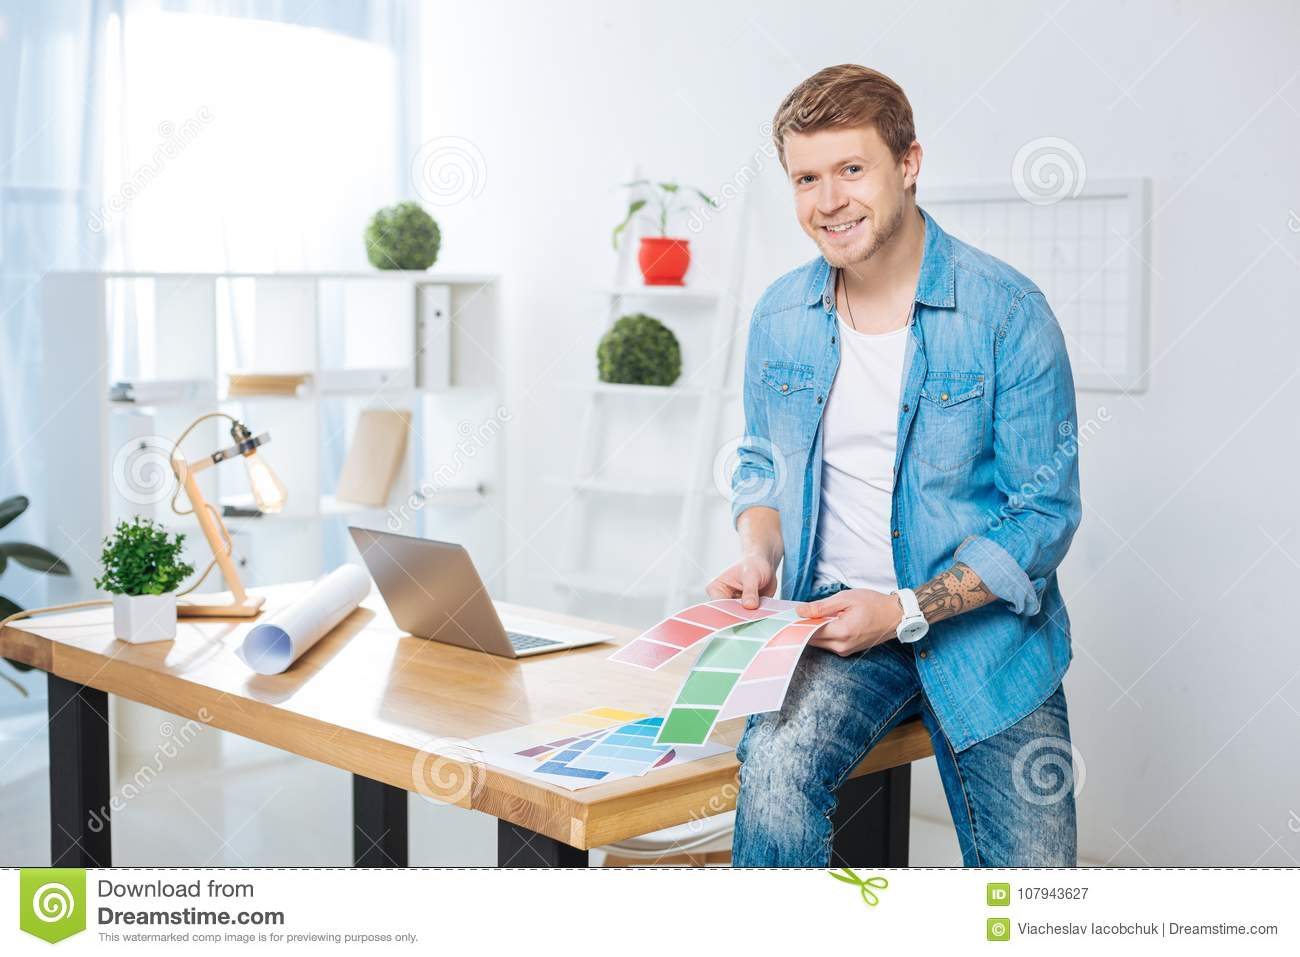 Handsome man holding color palettes and smiling